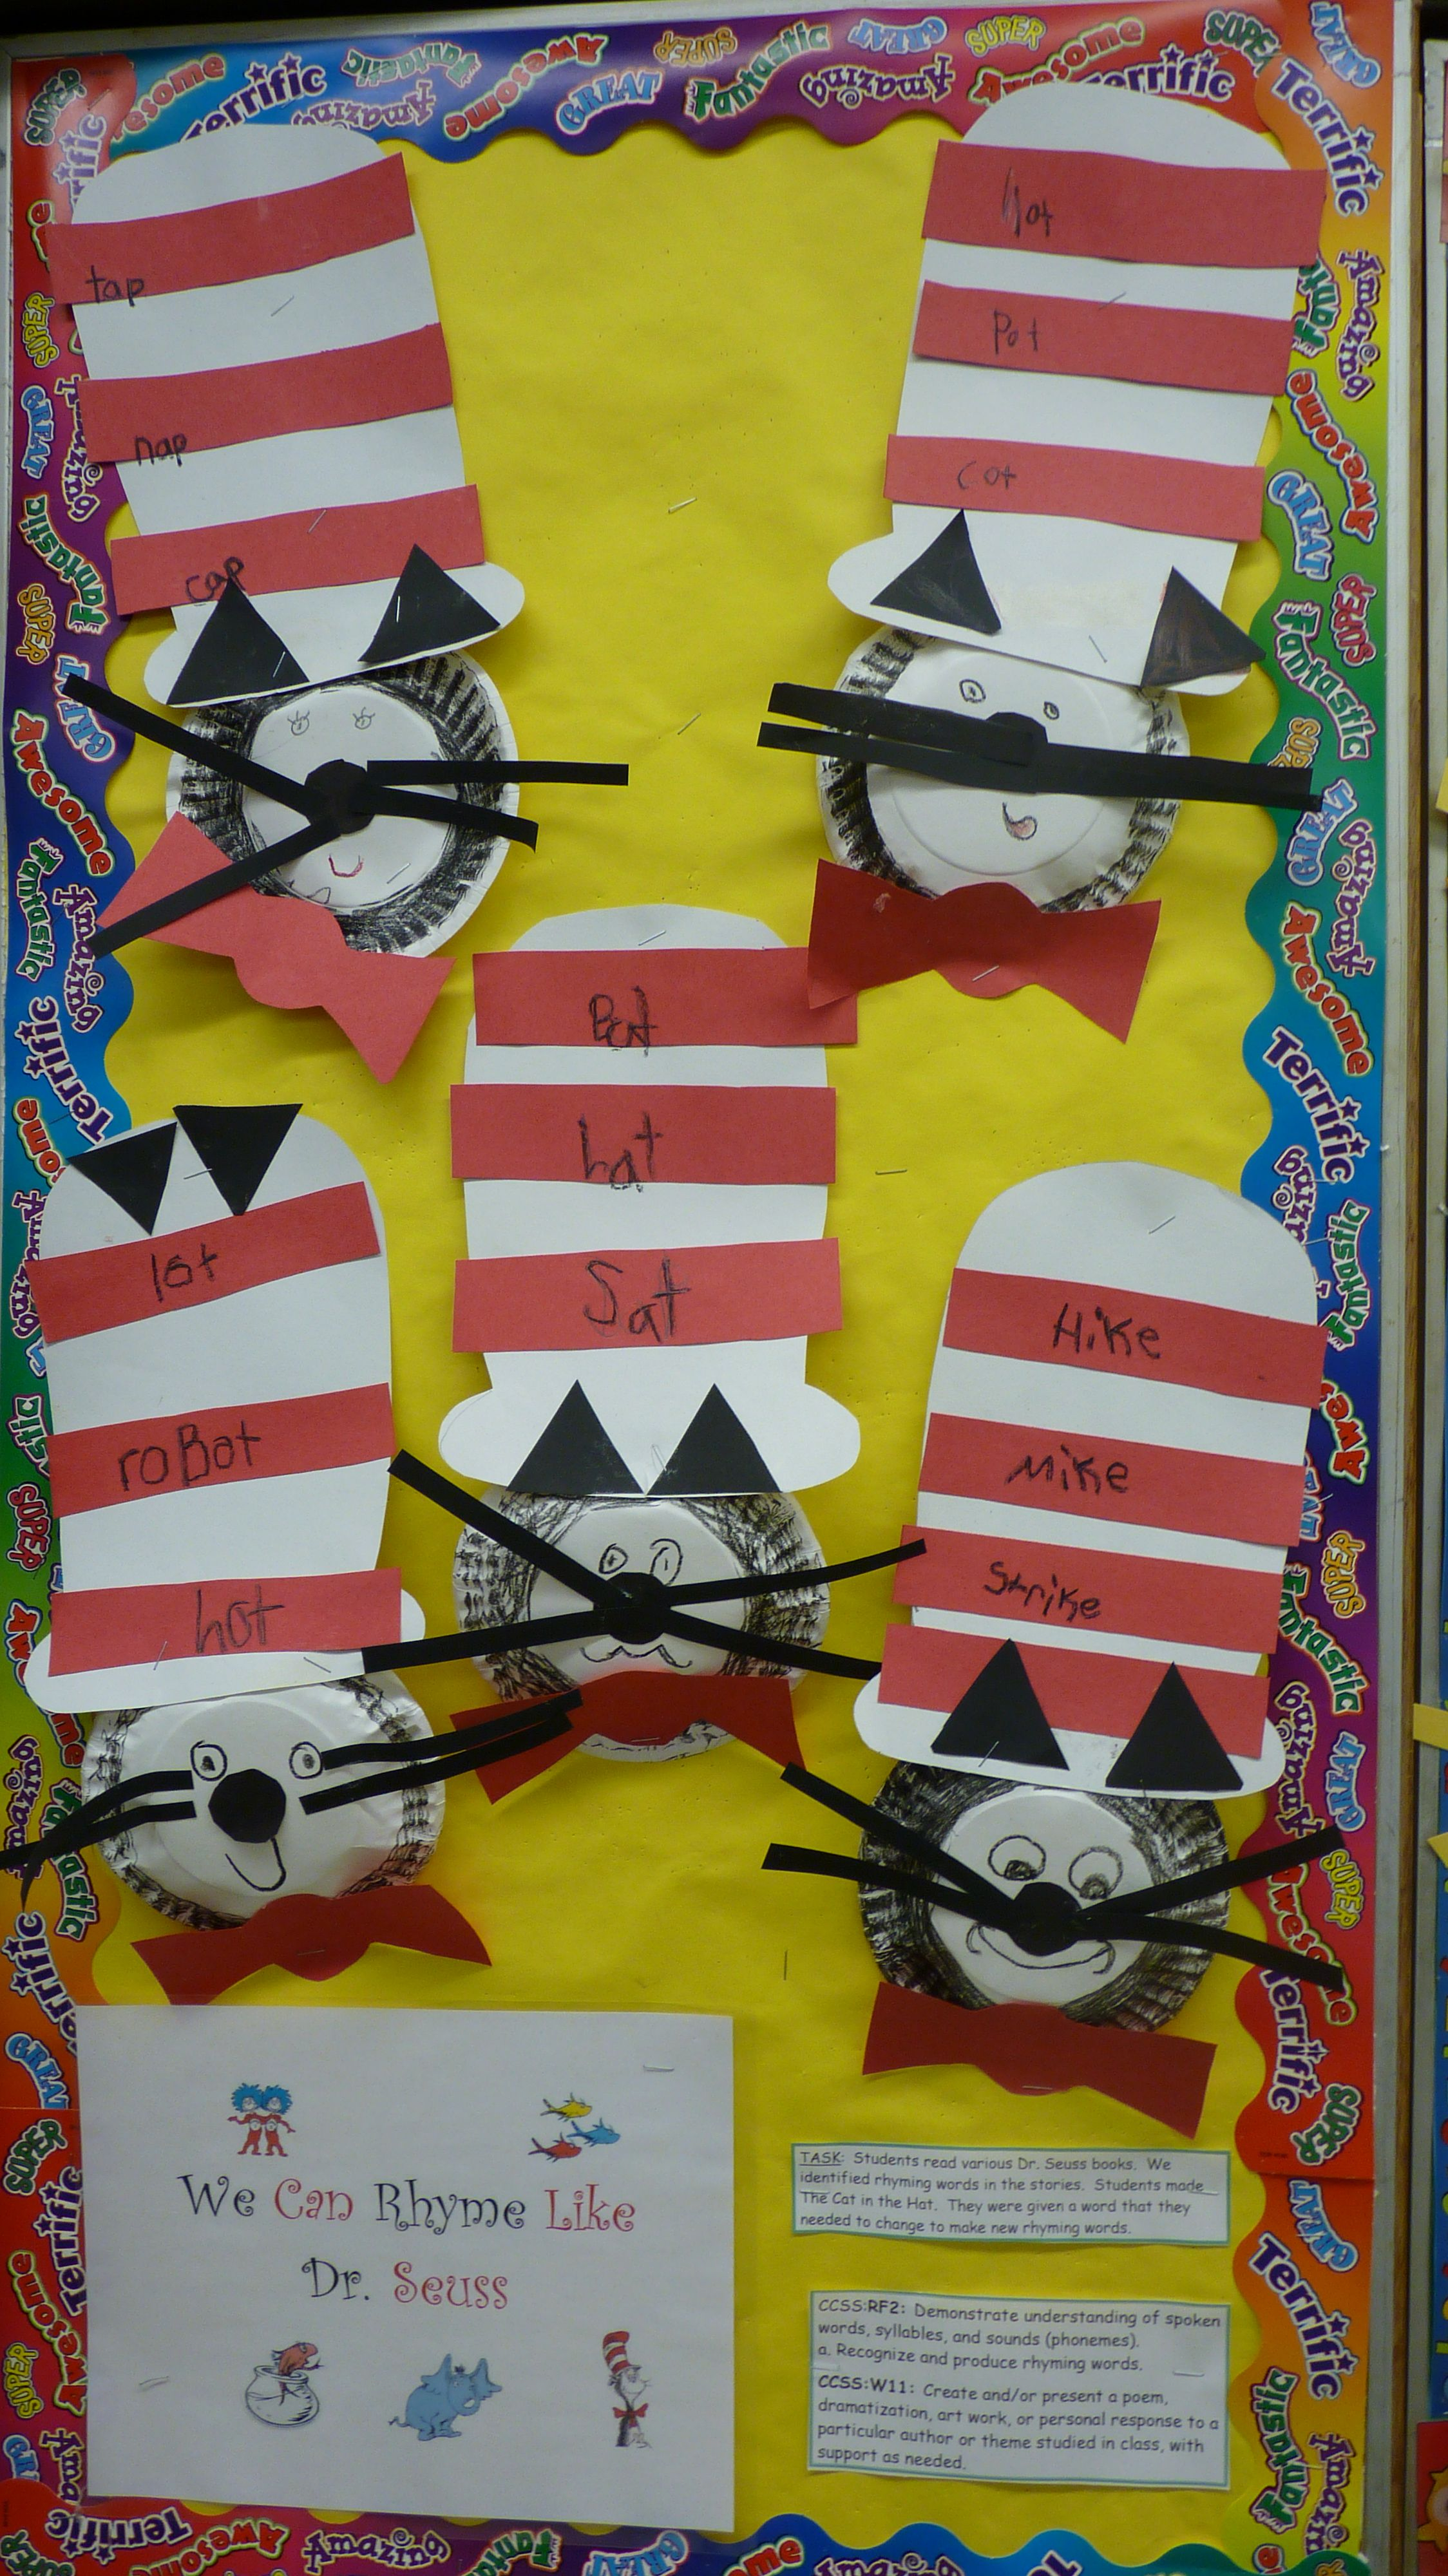 Rhyming Words With Cat In The Hat